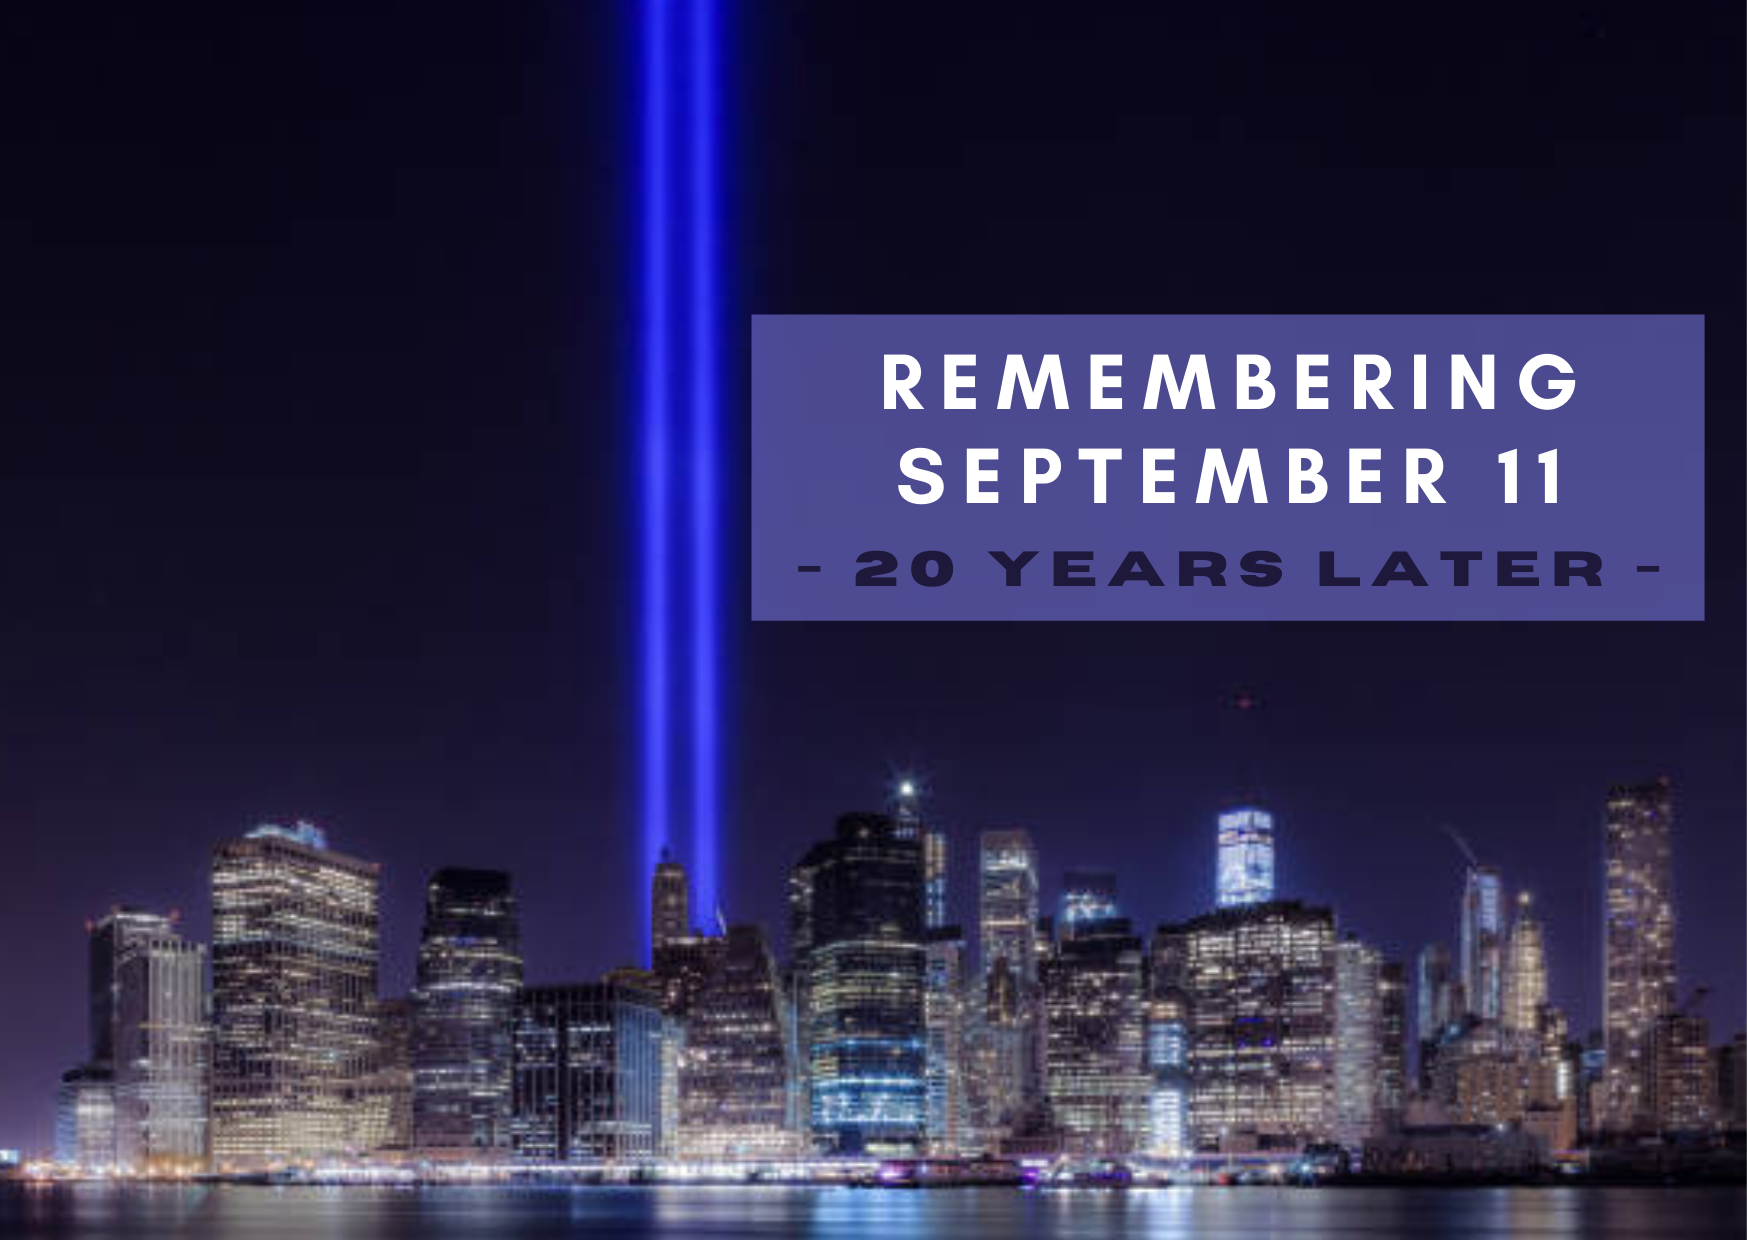 A Message From our President: Reflecting on September 11th, Twenty Years Later